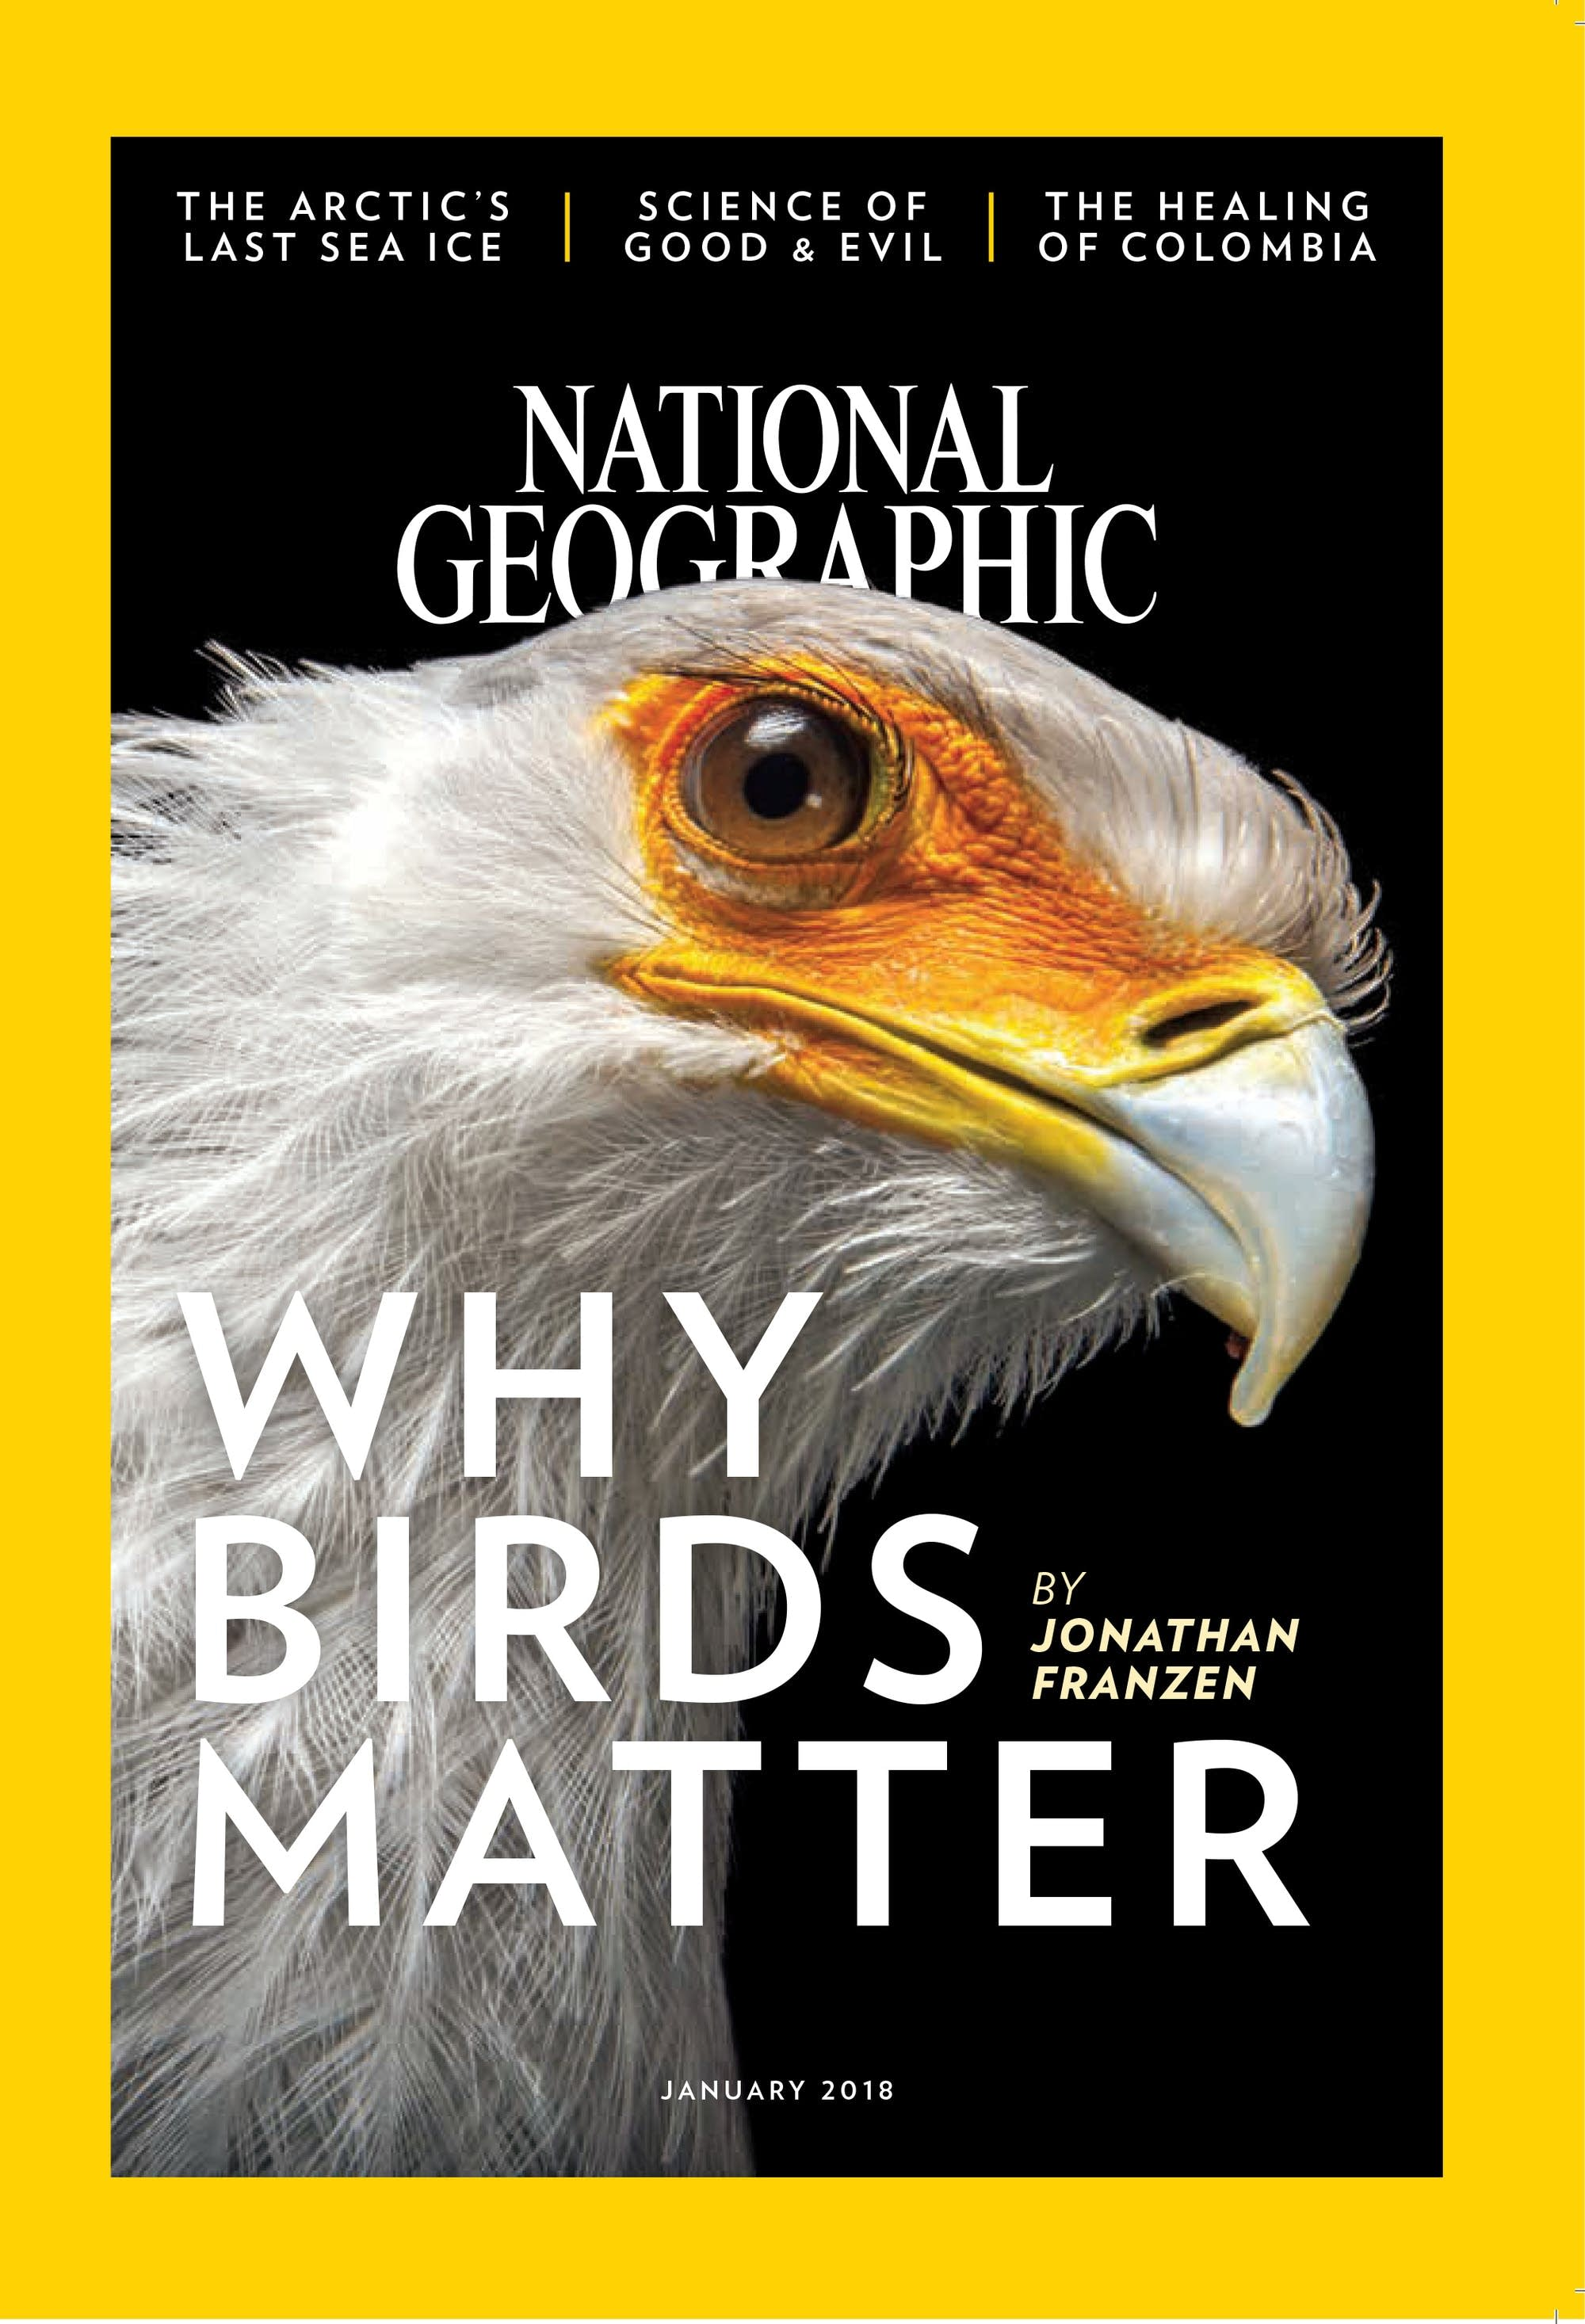 The January 2018 issue of National Geographic